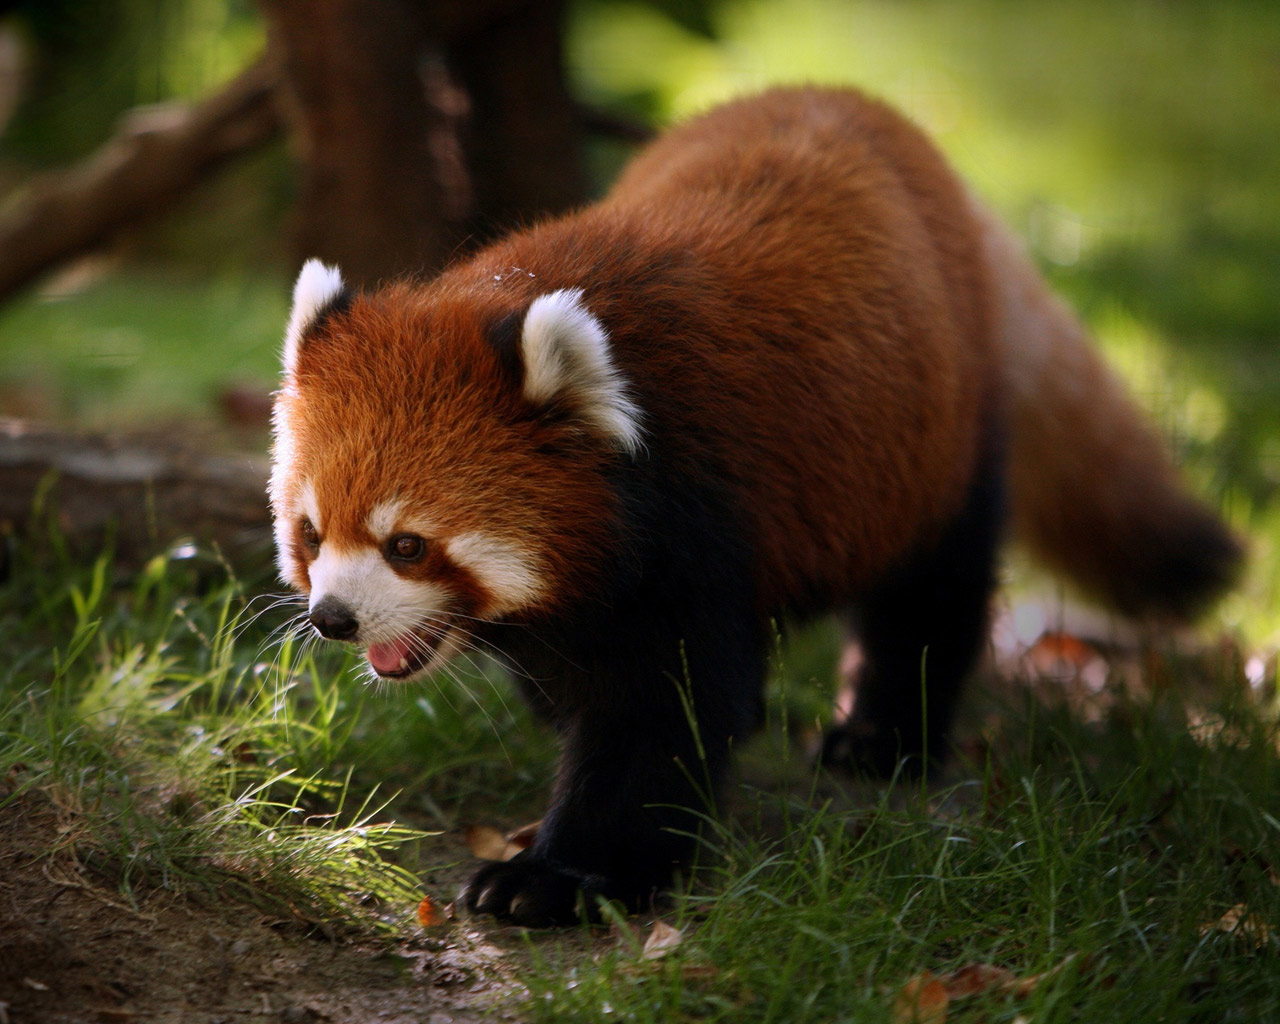 http://3.bp.blogspot.com/-bV-rPhN5NUY/Tt8i_2_A4xI/AAAAAAAAAk8/LVHa8mFSO-8/s1600/Red_Panda_background_images.jpg